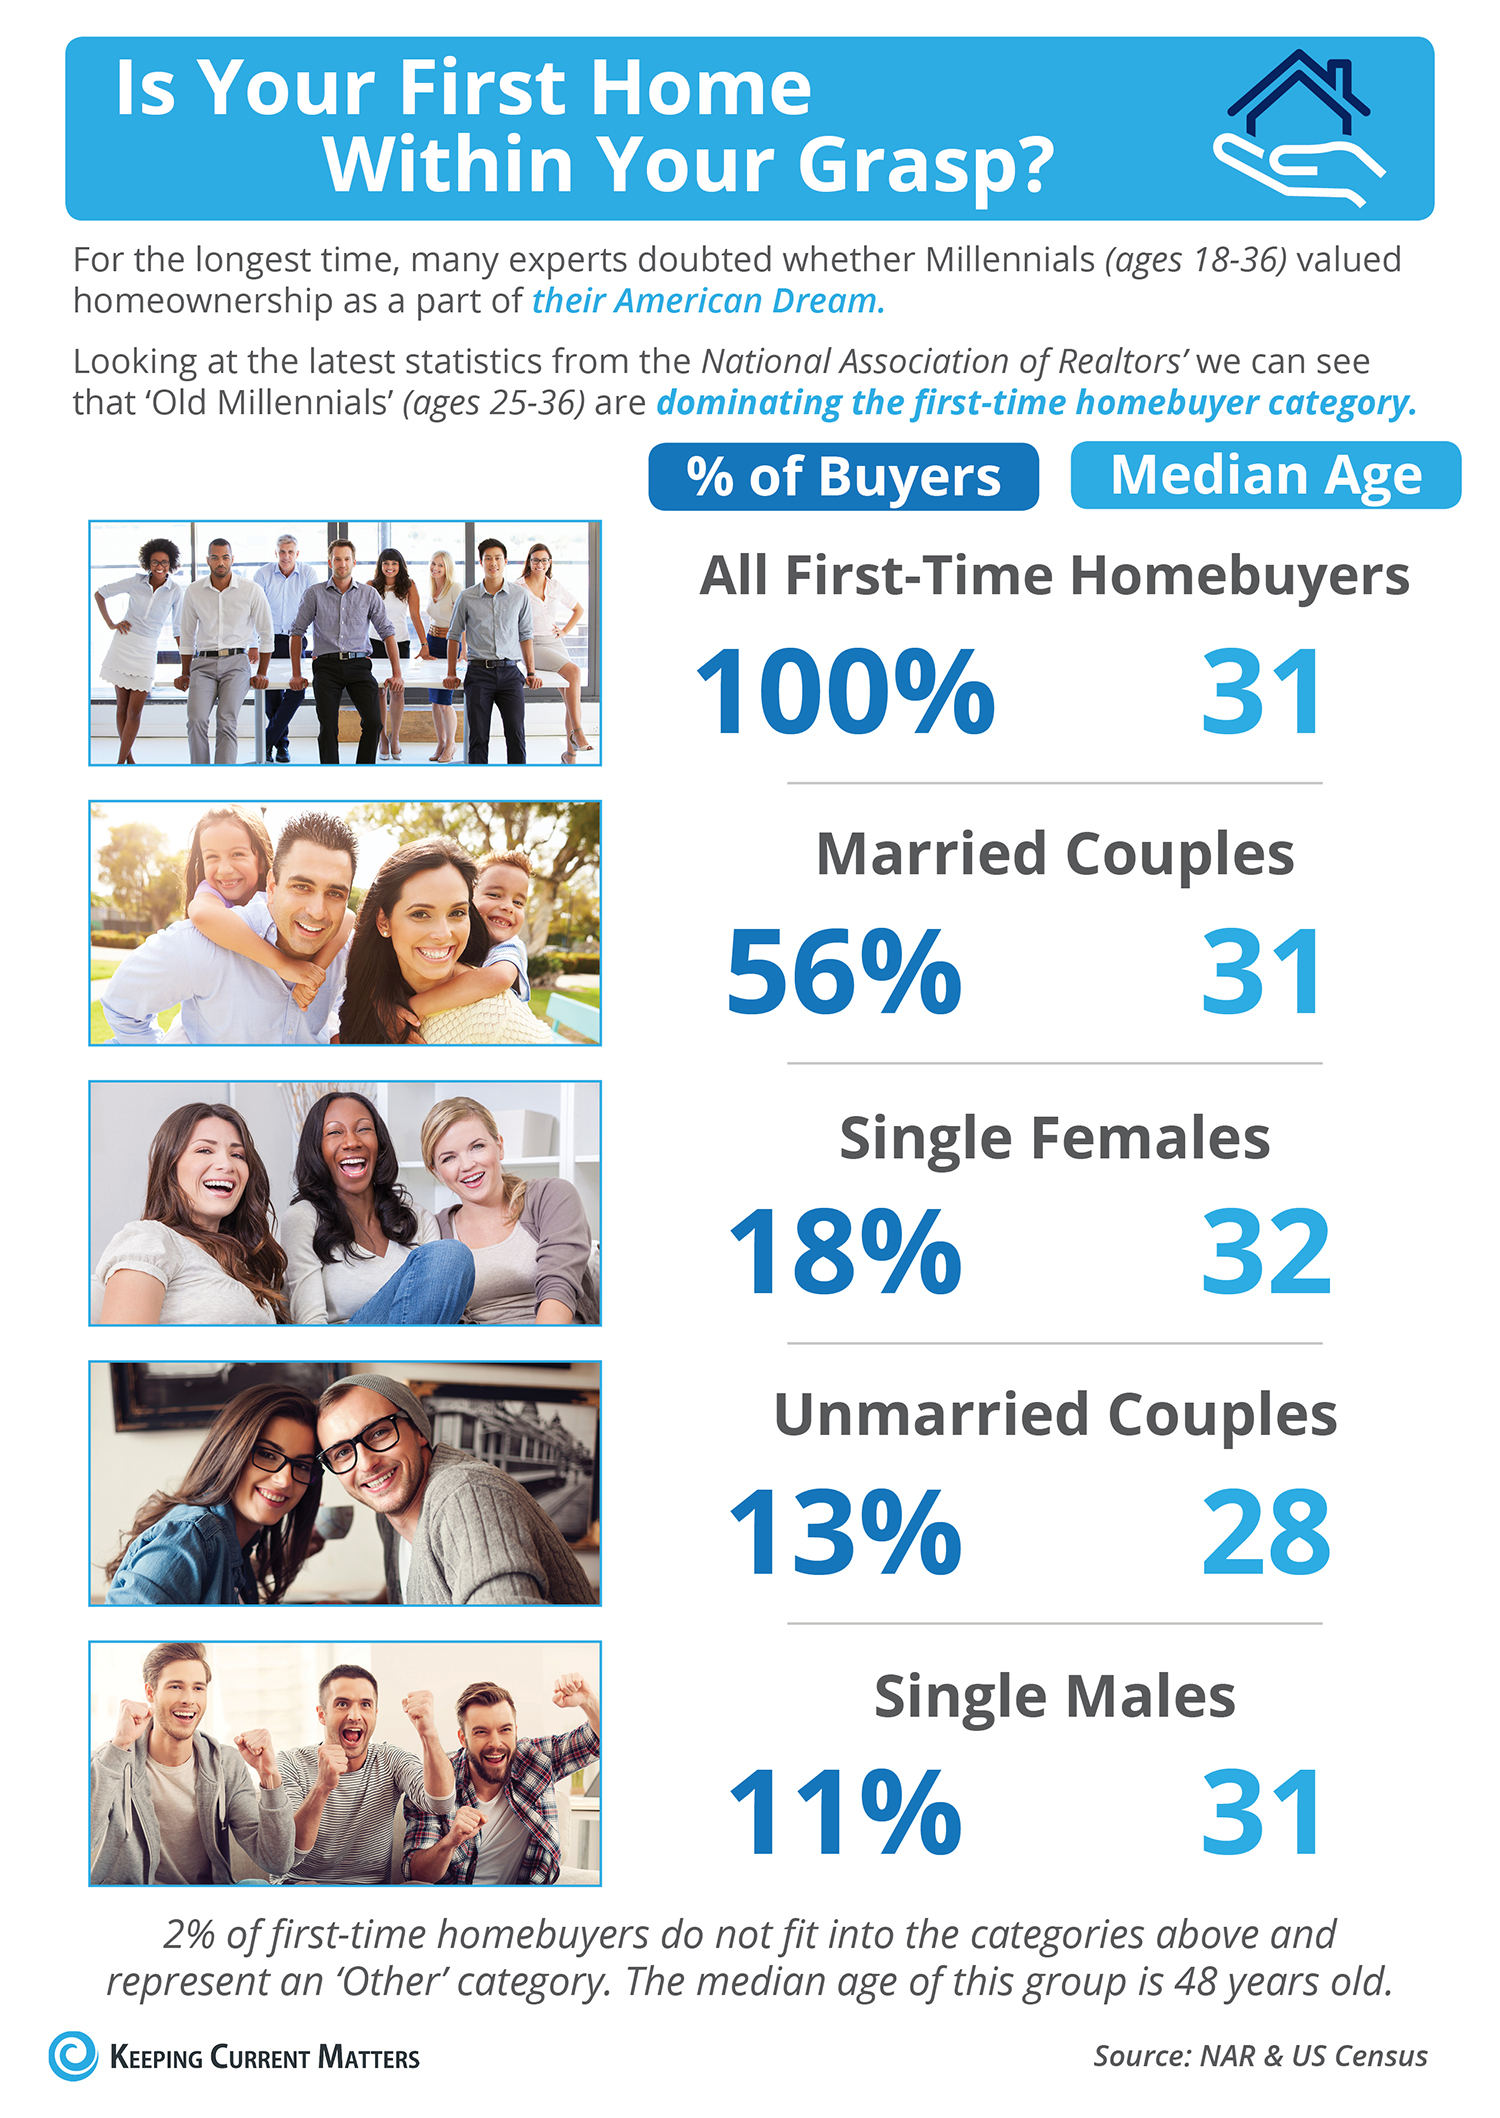 Is Your First Home Within Your Grasp?  [INFOGRAPHIC] | Keeping Current Matters